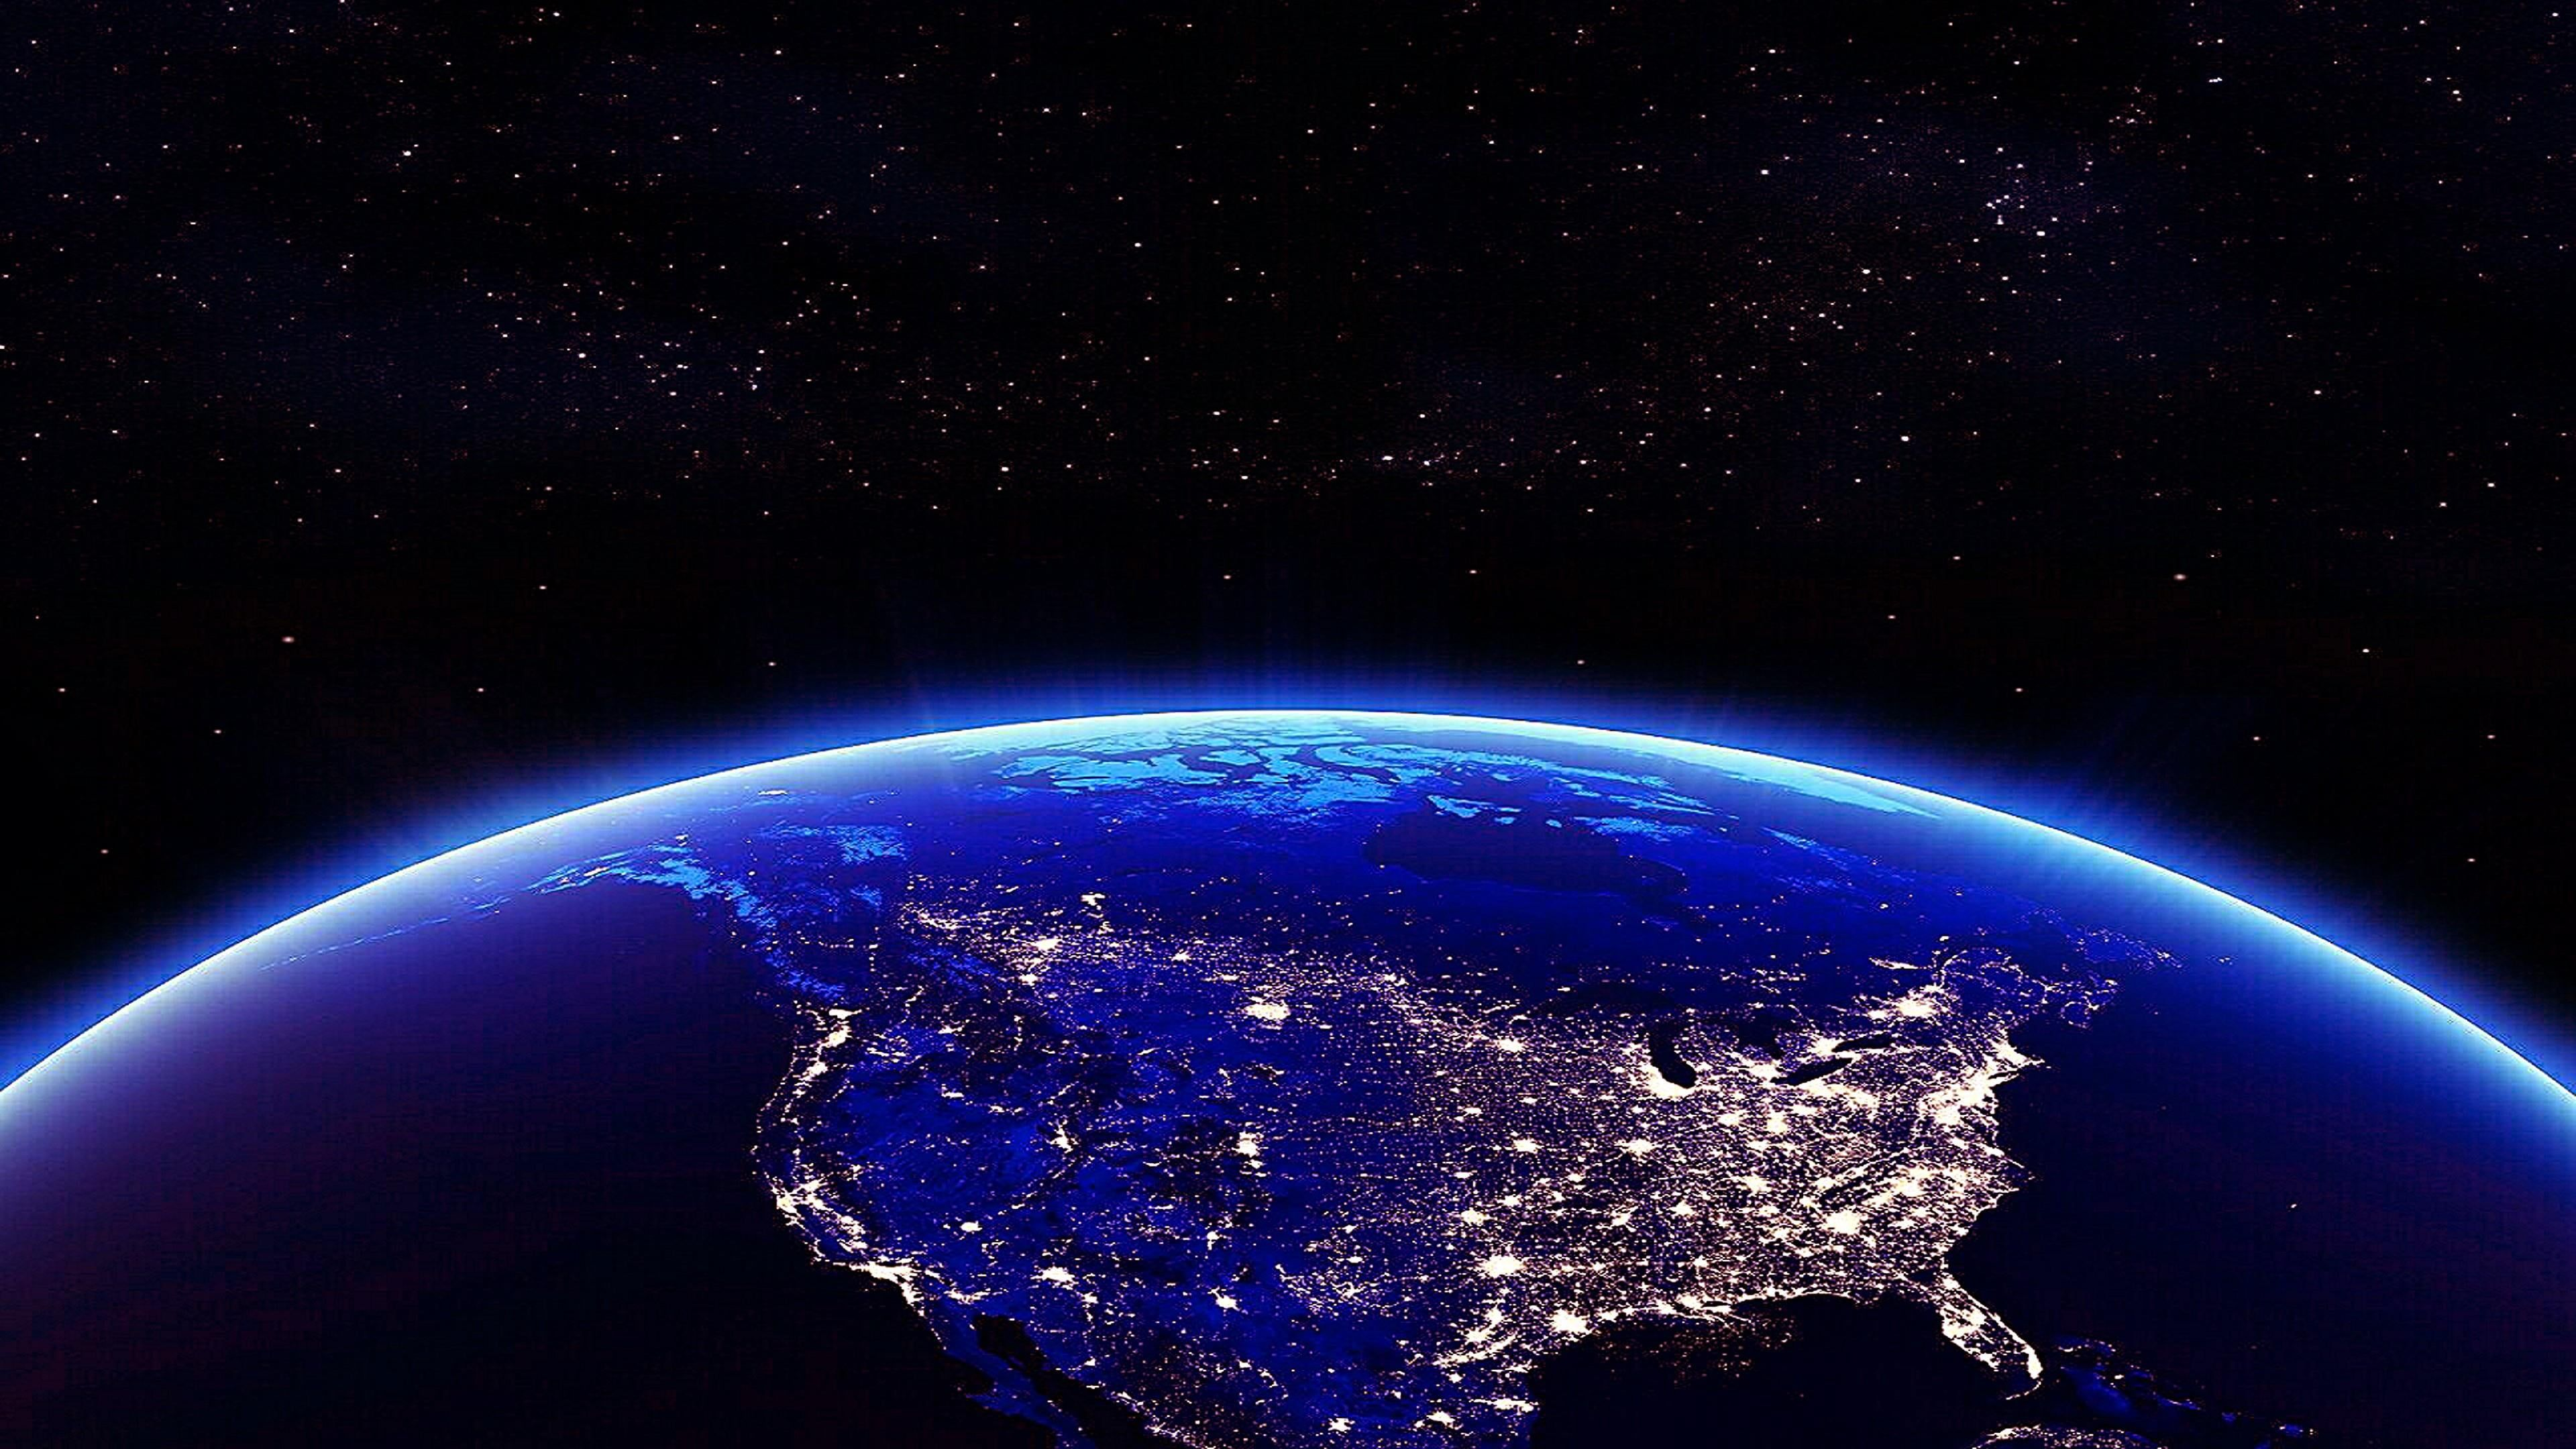 Earth North America In The Night View From Space 4k Wallpaper For Mobile Phones Tablet And 4k Wallpaper For Mobile Wallpaper Earth Wallpapers For Mobile Phones